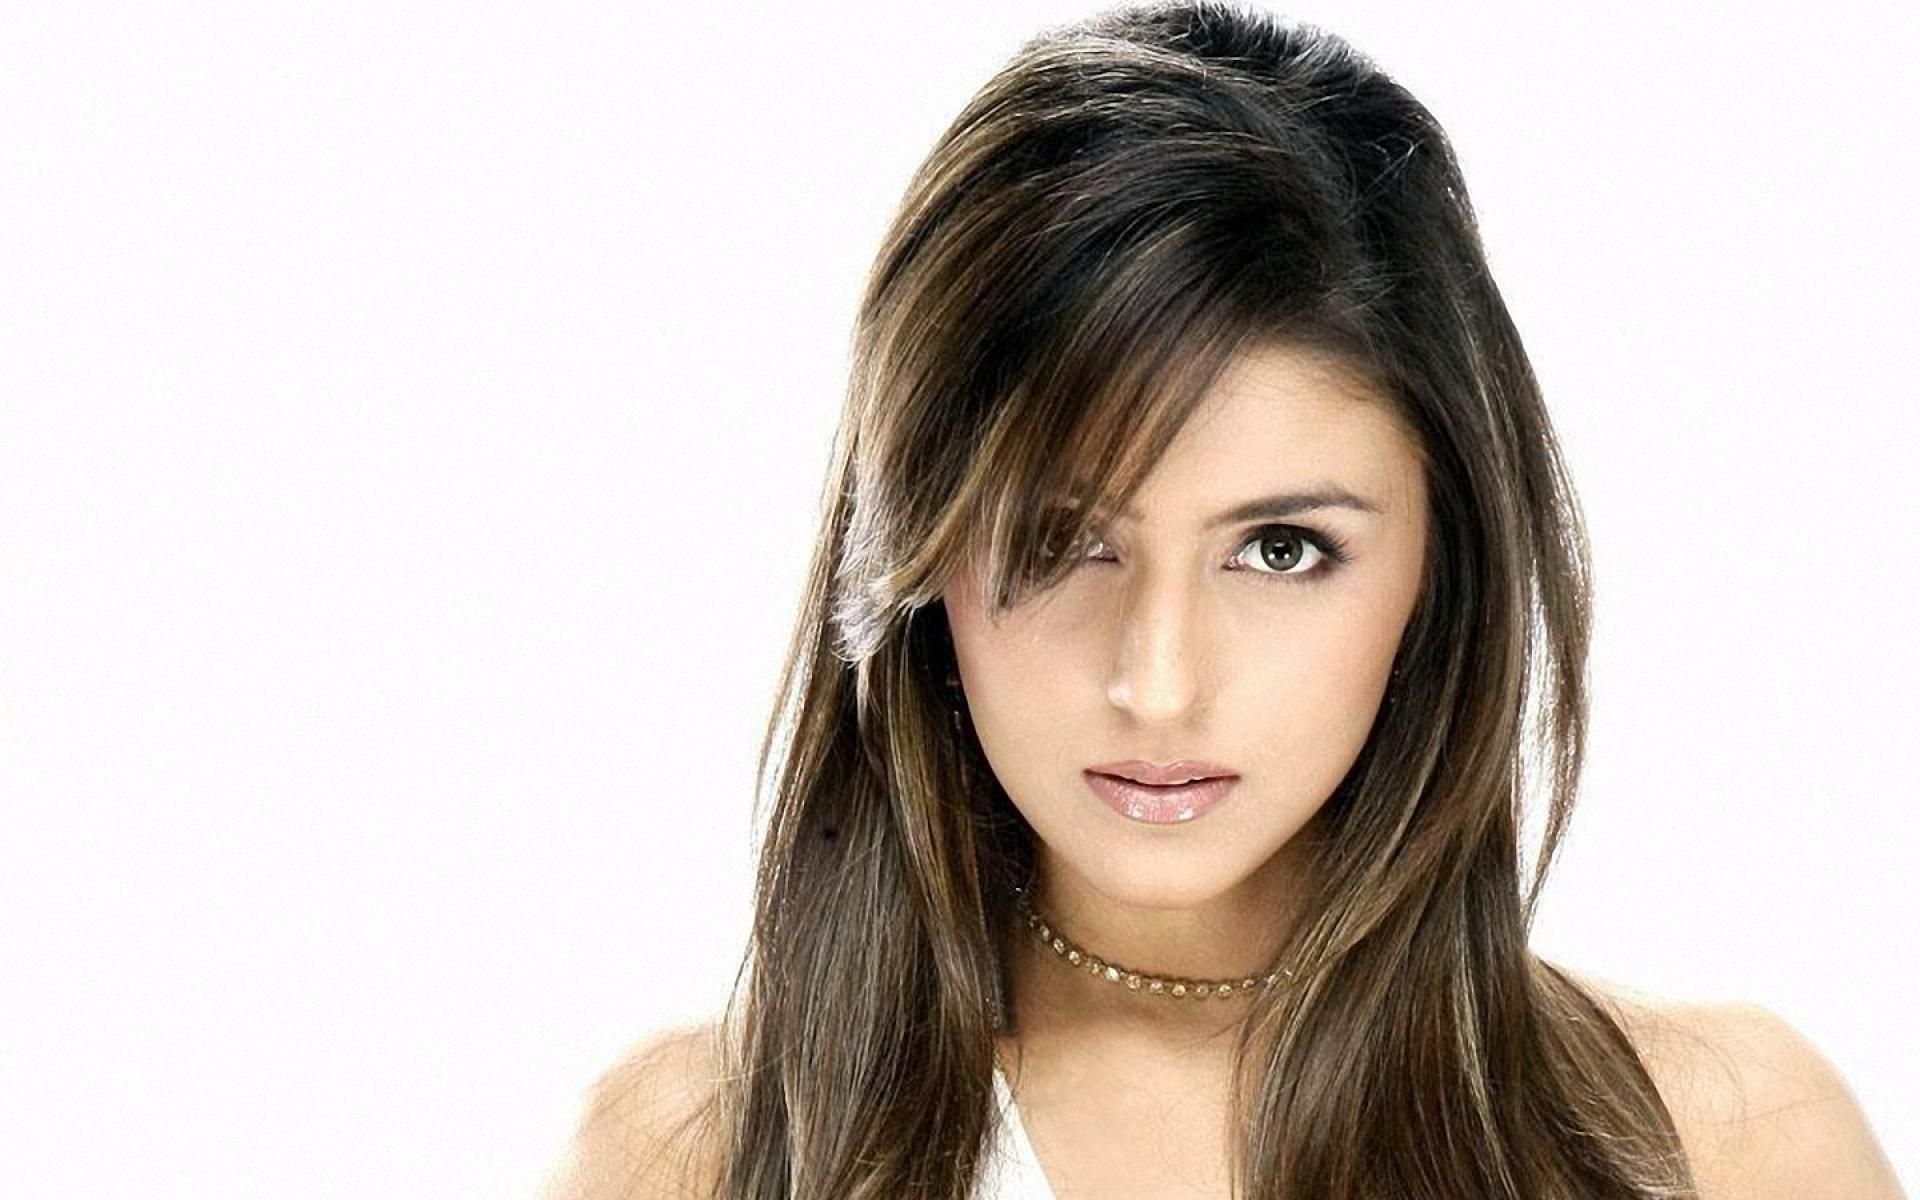 Forum on this topic: Jacky St. James, aarti-mann/